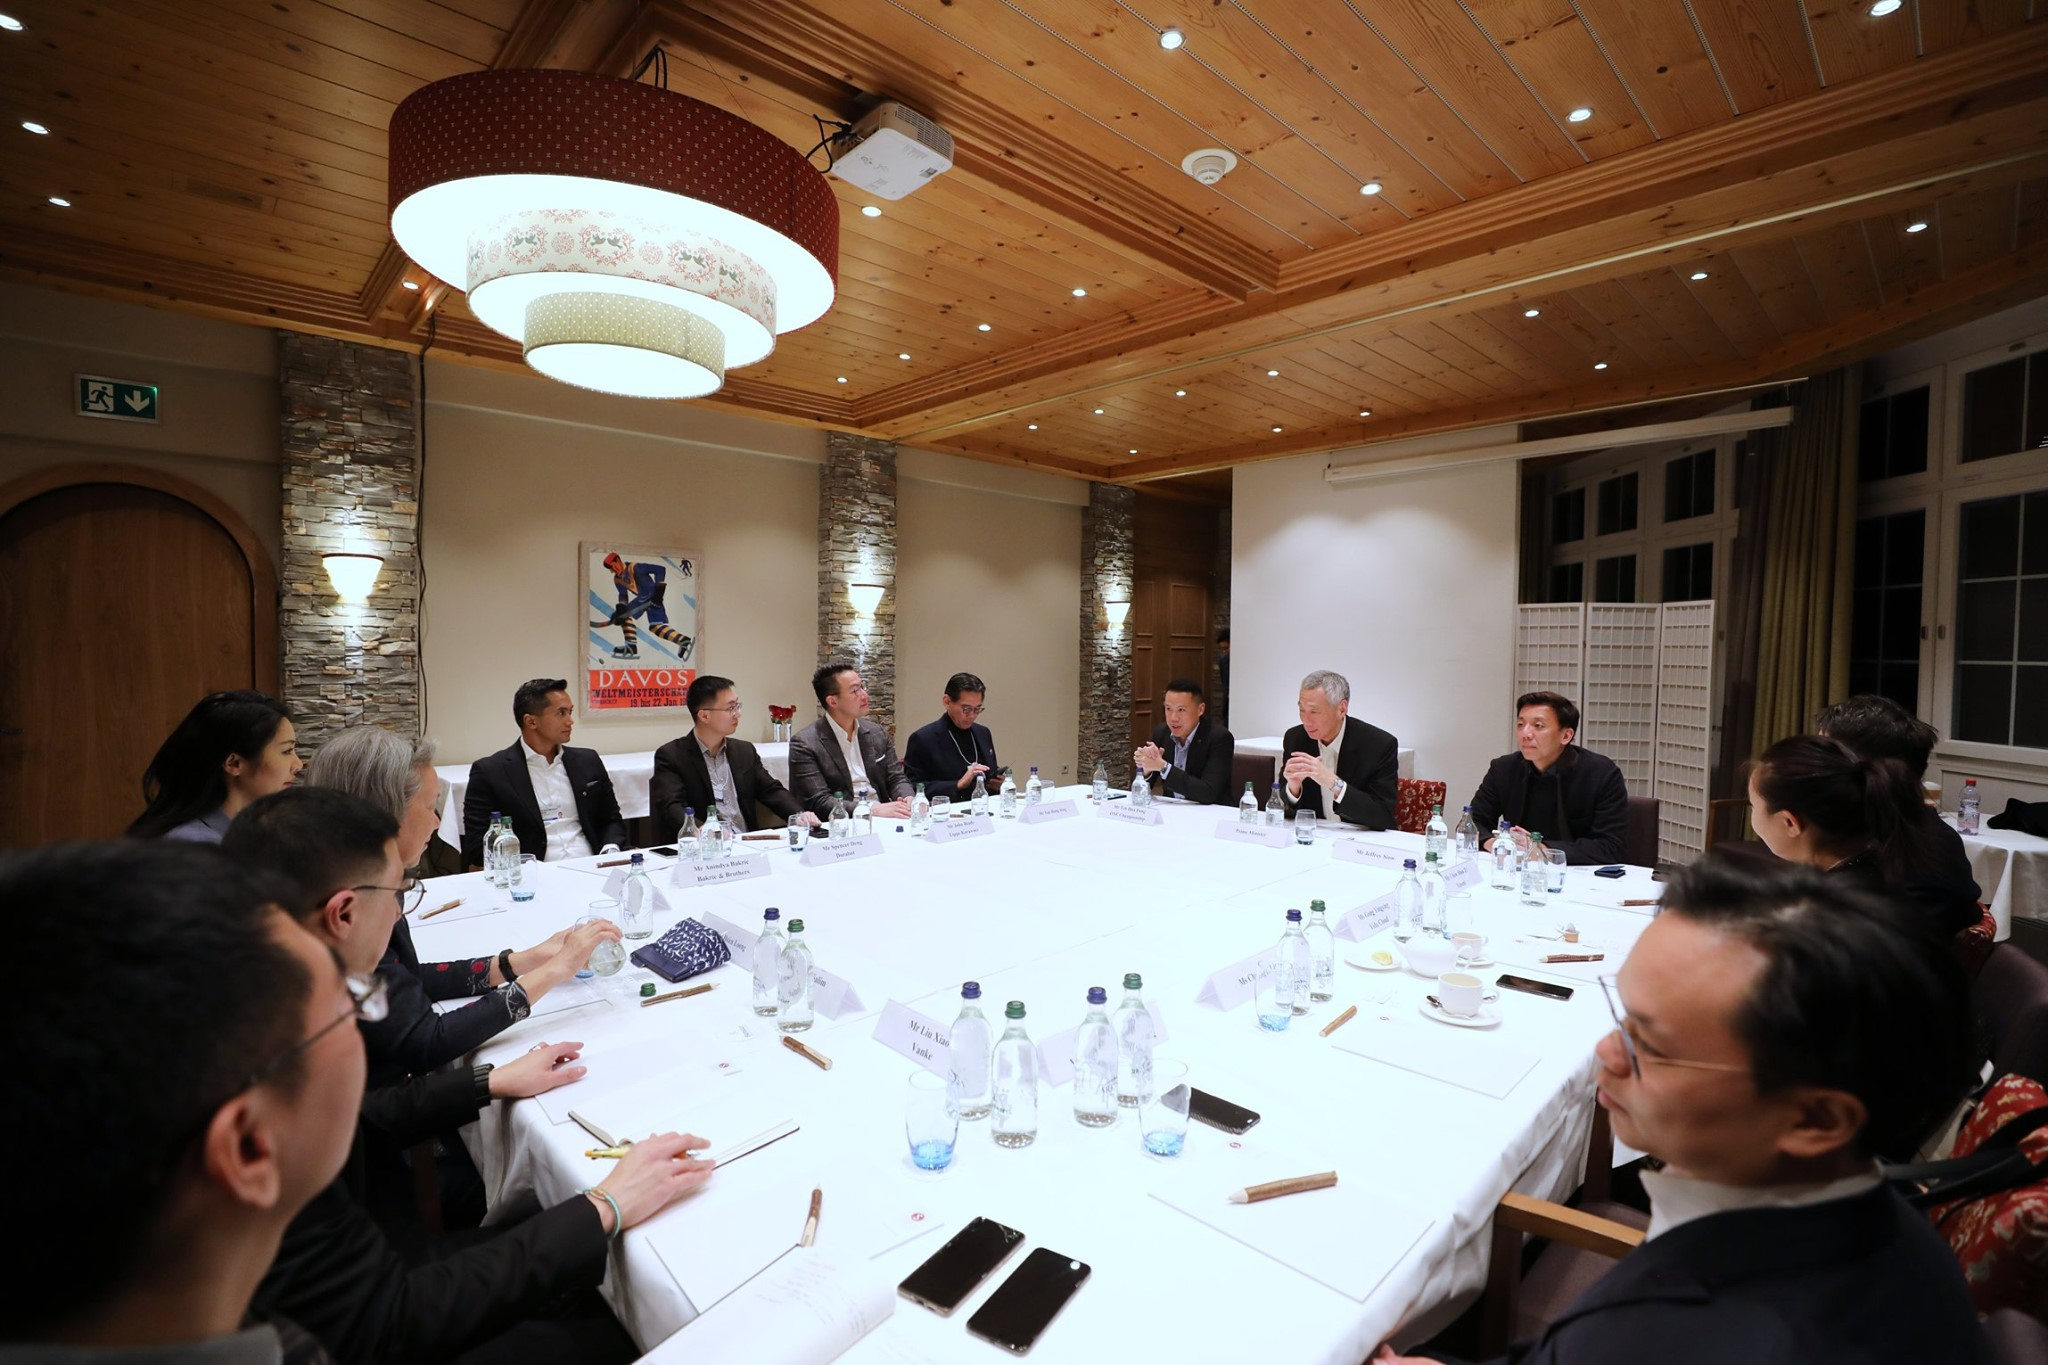 PM Lee Hsien Loong meeting young Asian business leaders from a wide range of industries at WEF in Davos. Photo courtesy: MCI, Fyrol